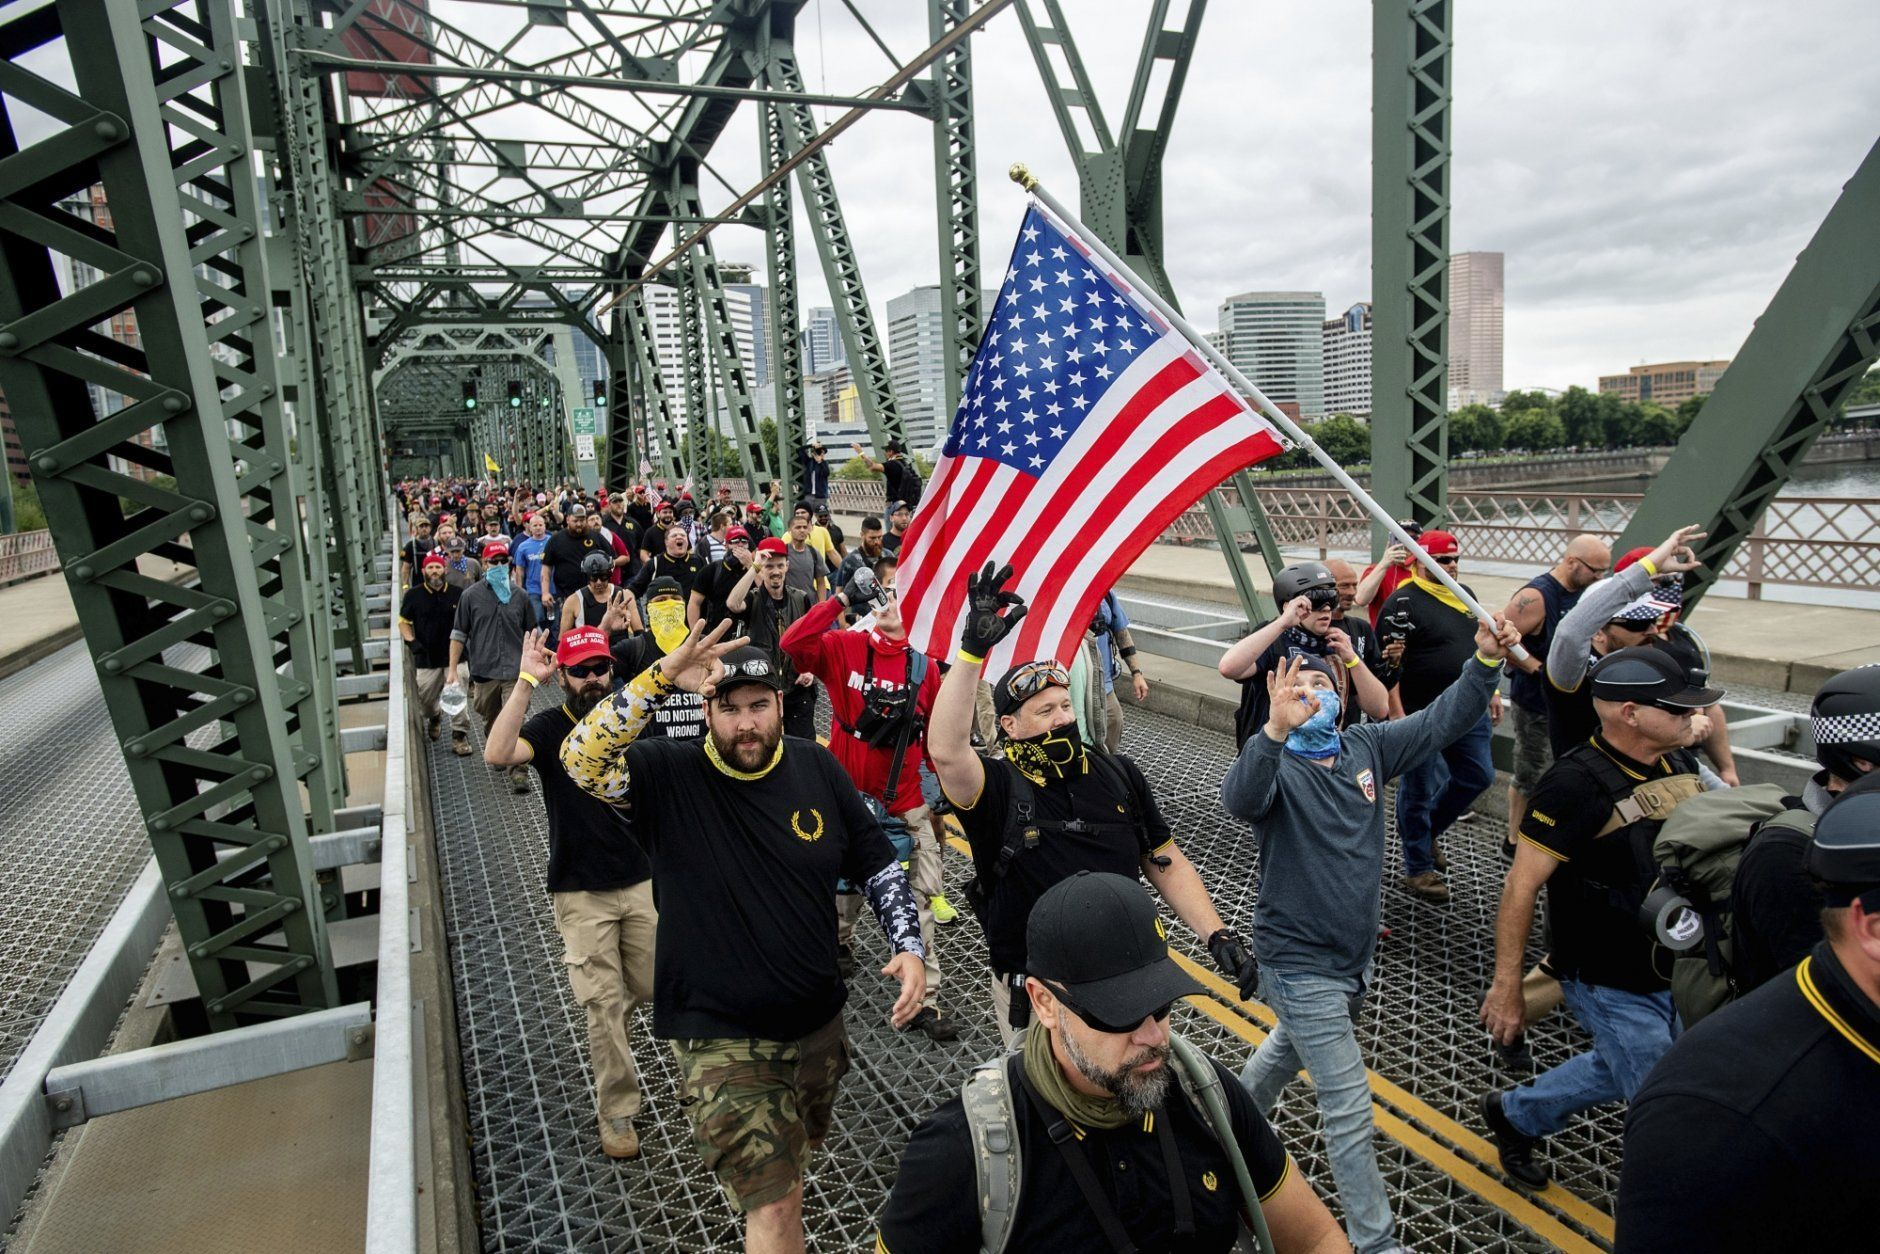 "Members of the Proud Boys and other right-wing demonstrators march across the Hawthorne Bridge during an ""End Domestic Terrorism"" rally in Portland, Ore., on Saturday, Aug. 17, 2019. Police have mobilized to prevent clashes between conservative groups and counter-protesters who converged on the city. (AP Photo/Noah Berger)"